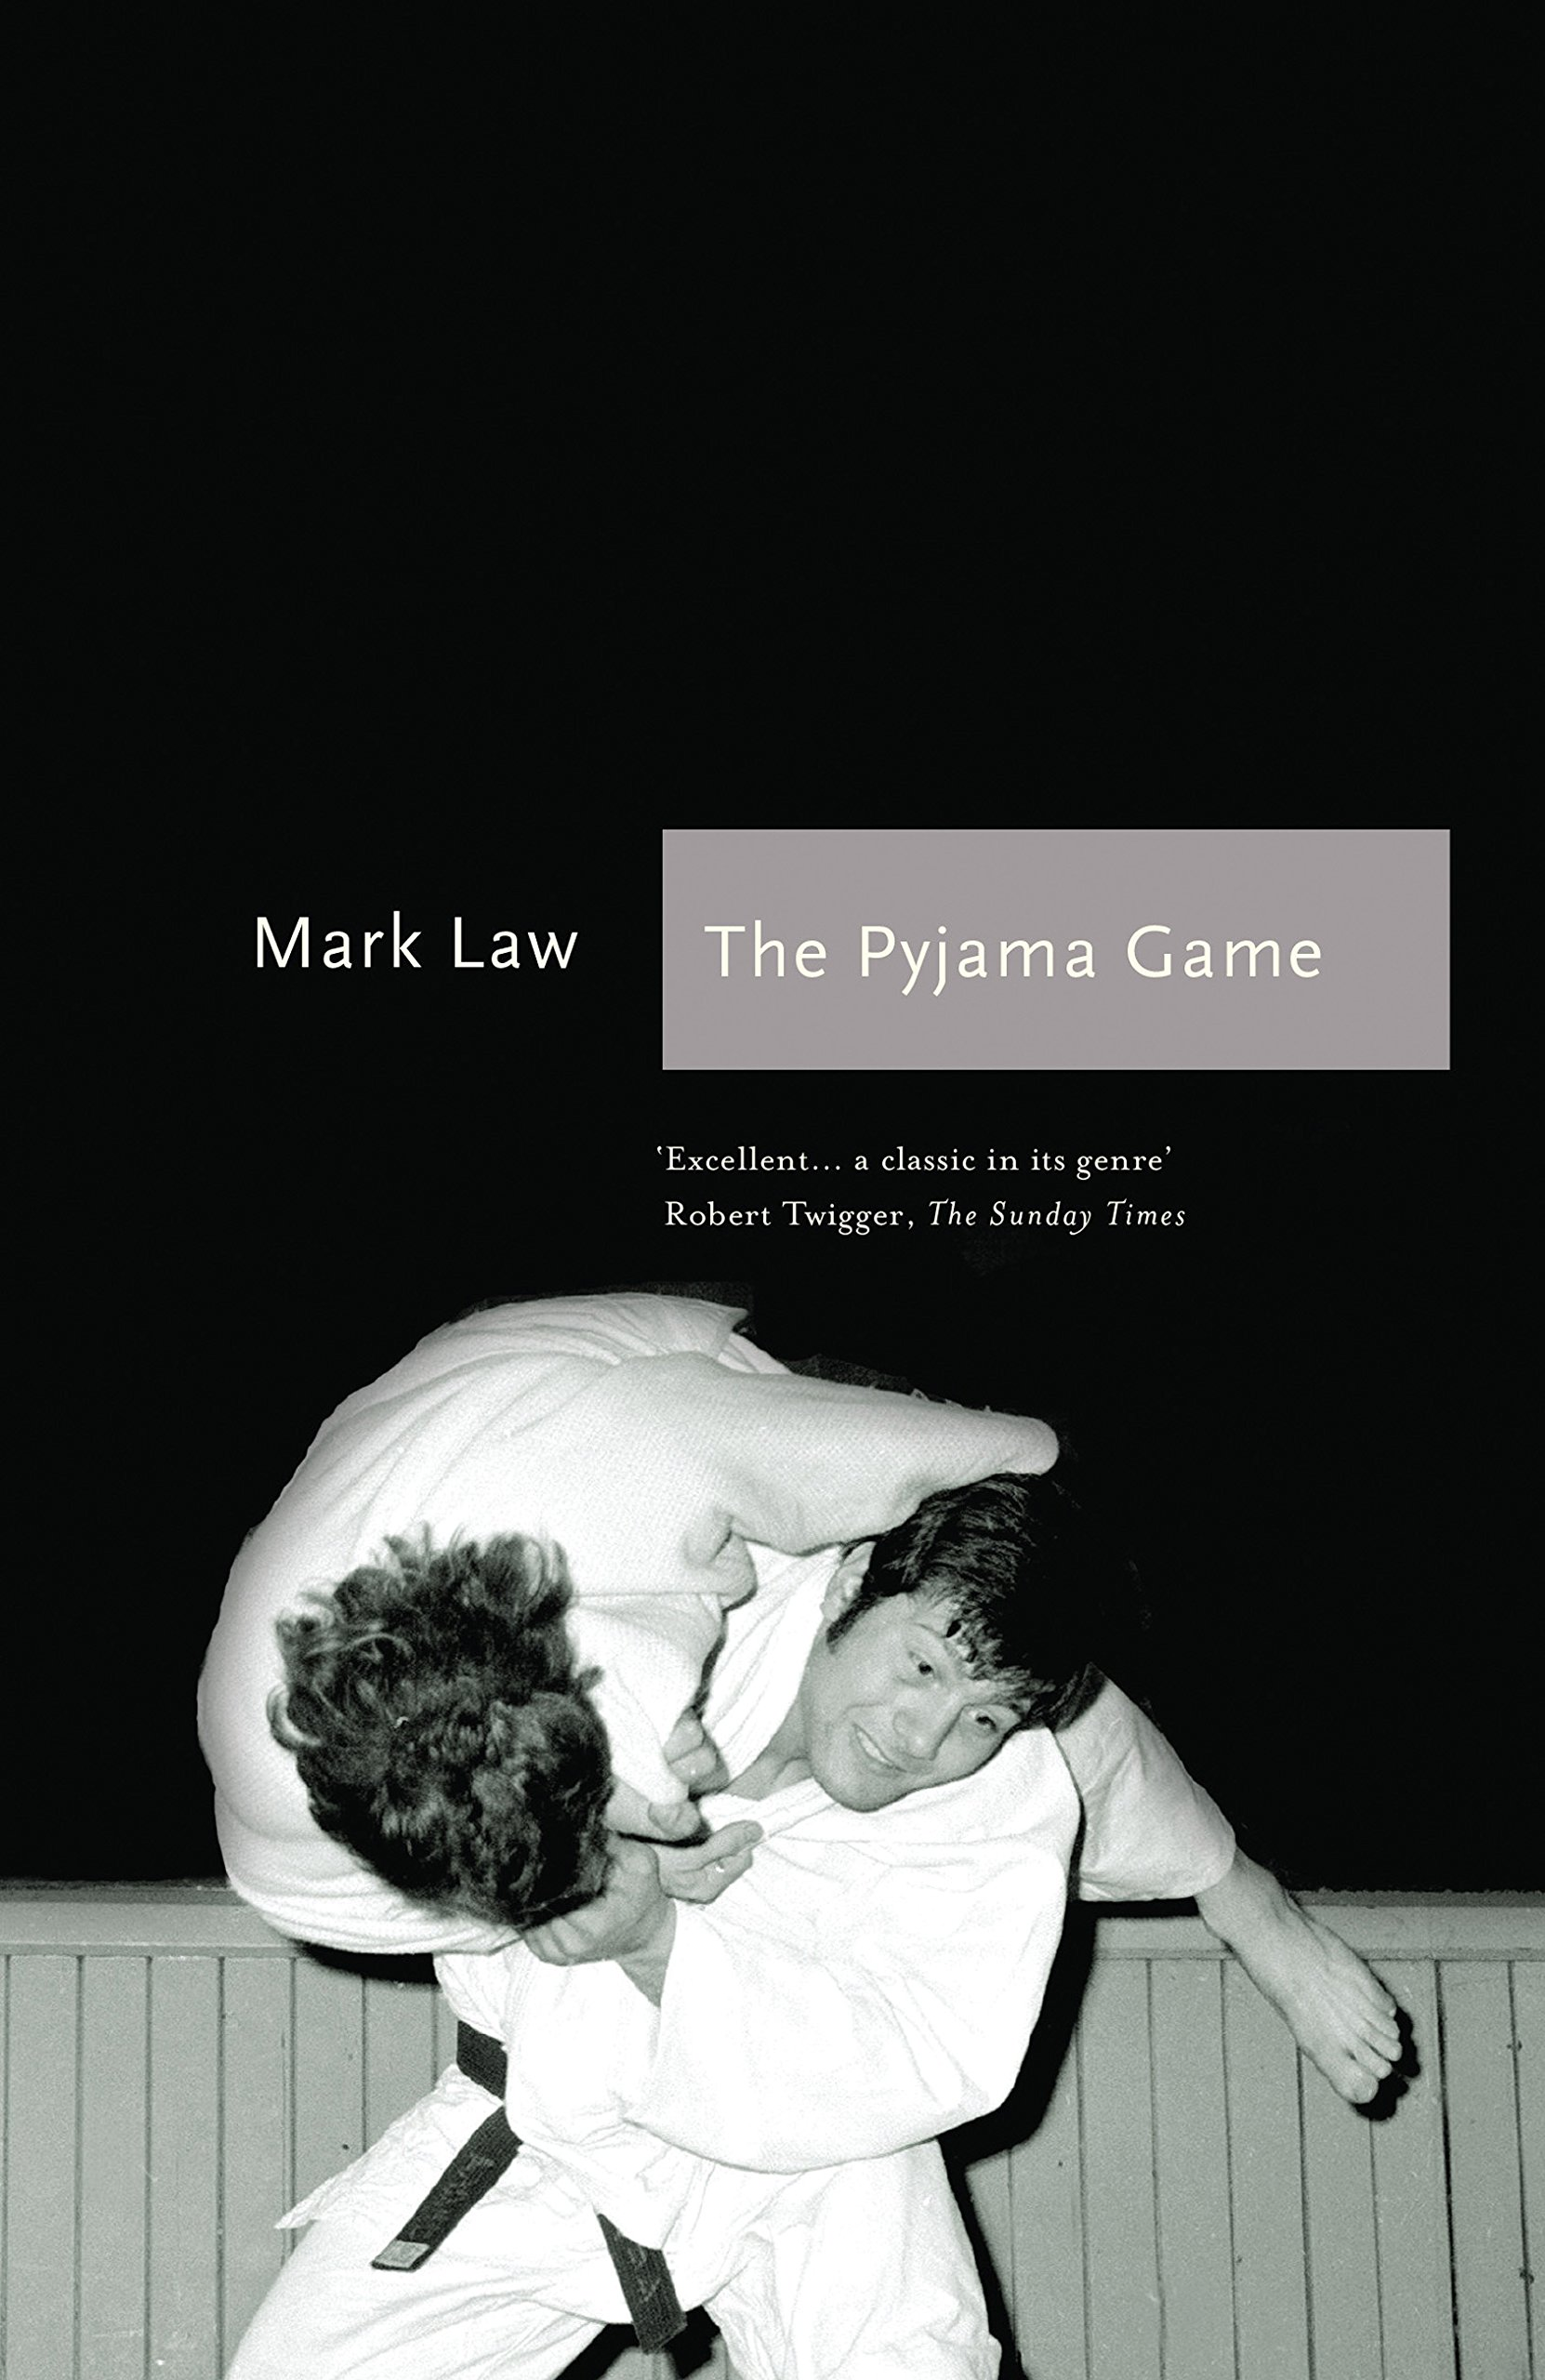 The Pyjama Game: A Journey into Judo (Sports Classics): Mark Law: 9781781312735: Amazon.com: Books